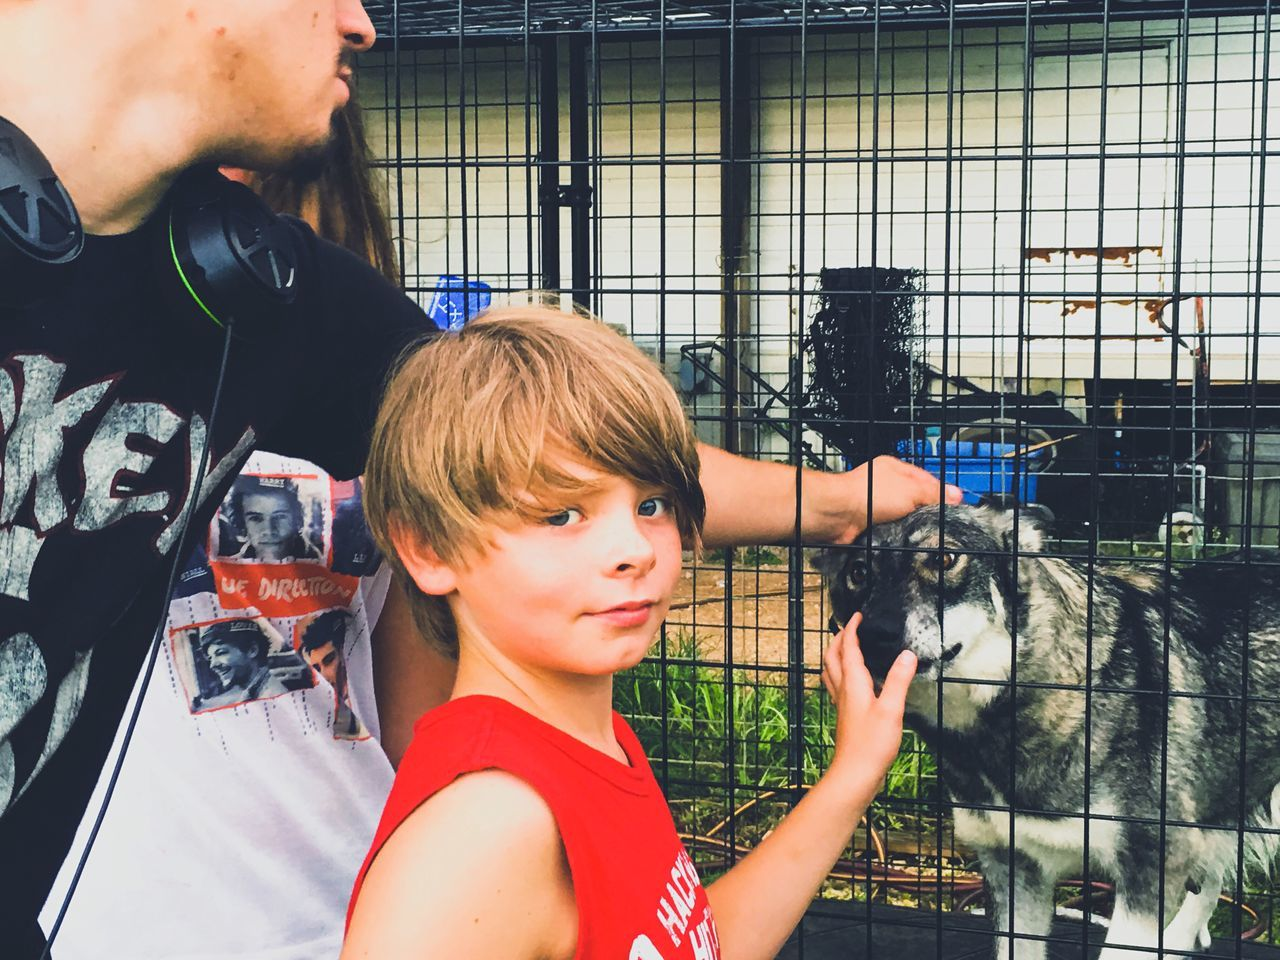 Everyday Emotion Family My Life Alabama Mobile County From My Point Of View A Friend Hanging Out With Momma Wolf Boys 11yrs Old Overcoming Your Fears He Touched Her Eventually Making Memories! :) Family Matters BestEyeemShots Spending Time Together Eyeem Market